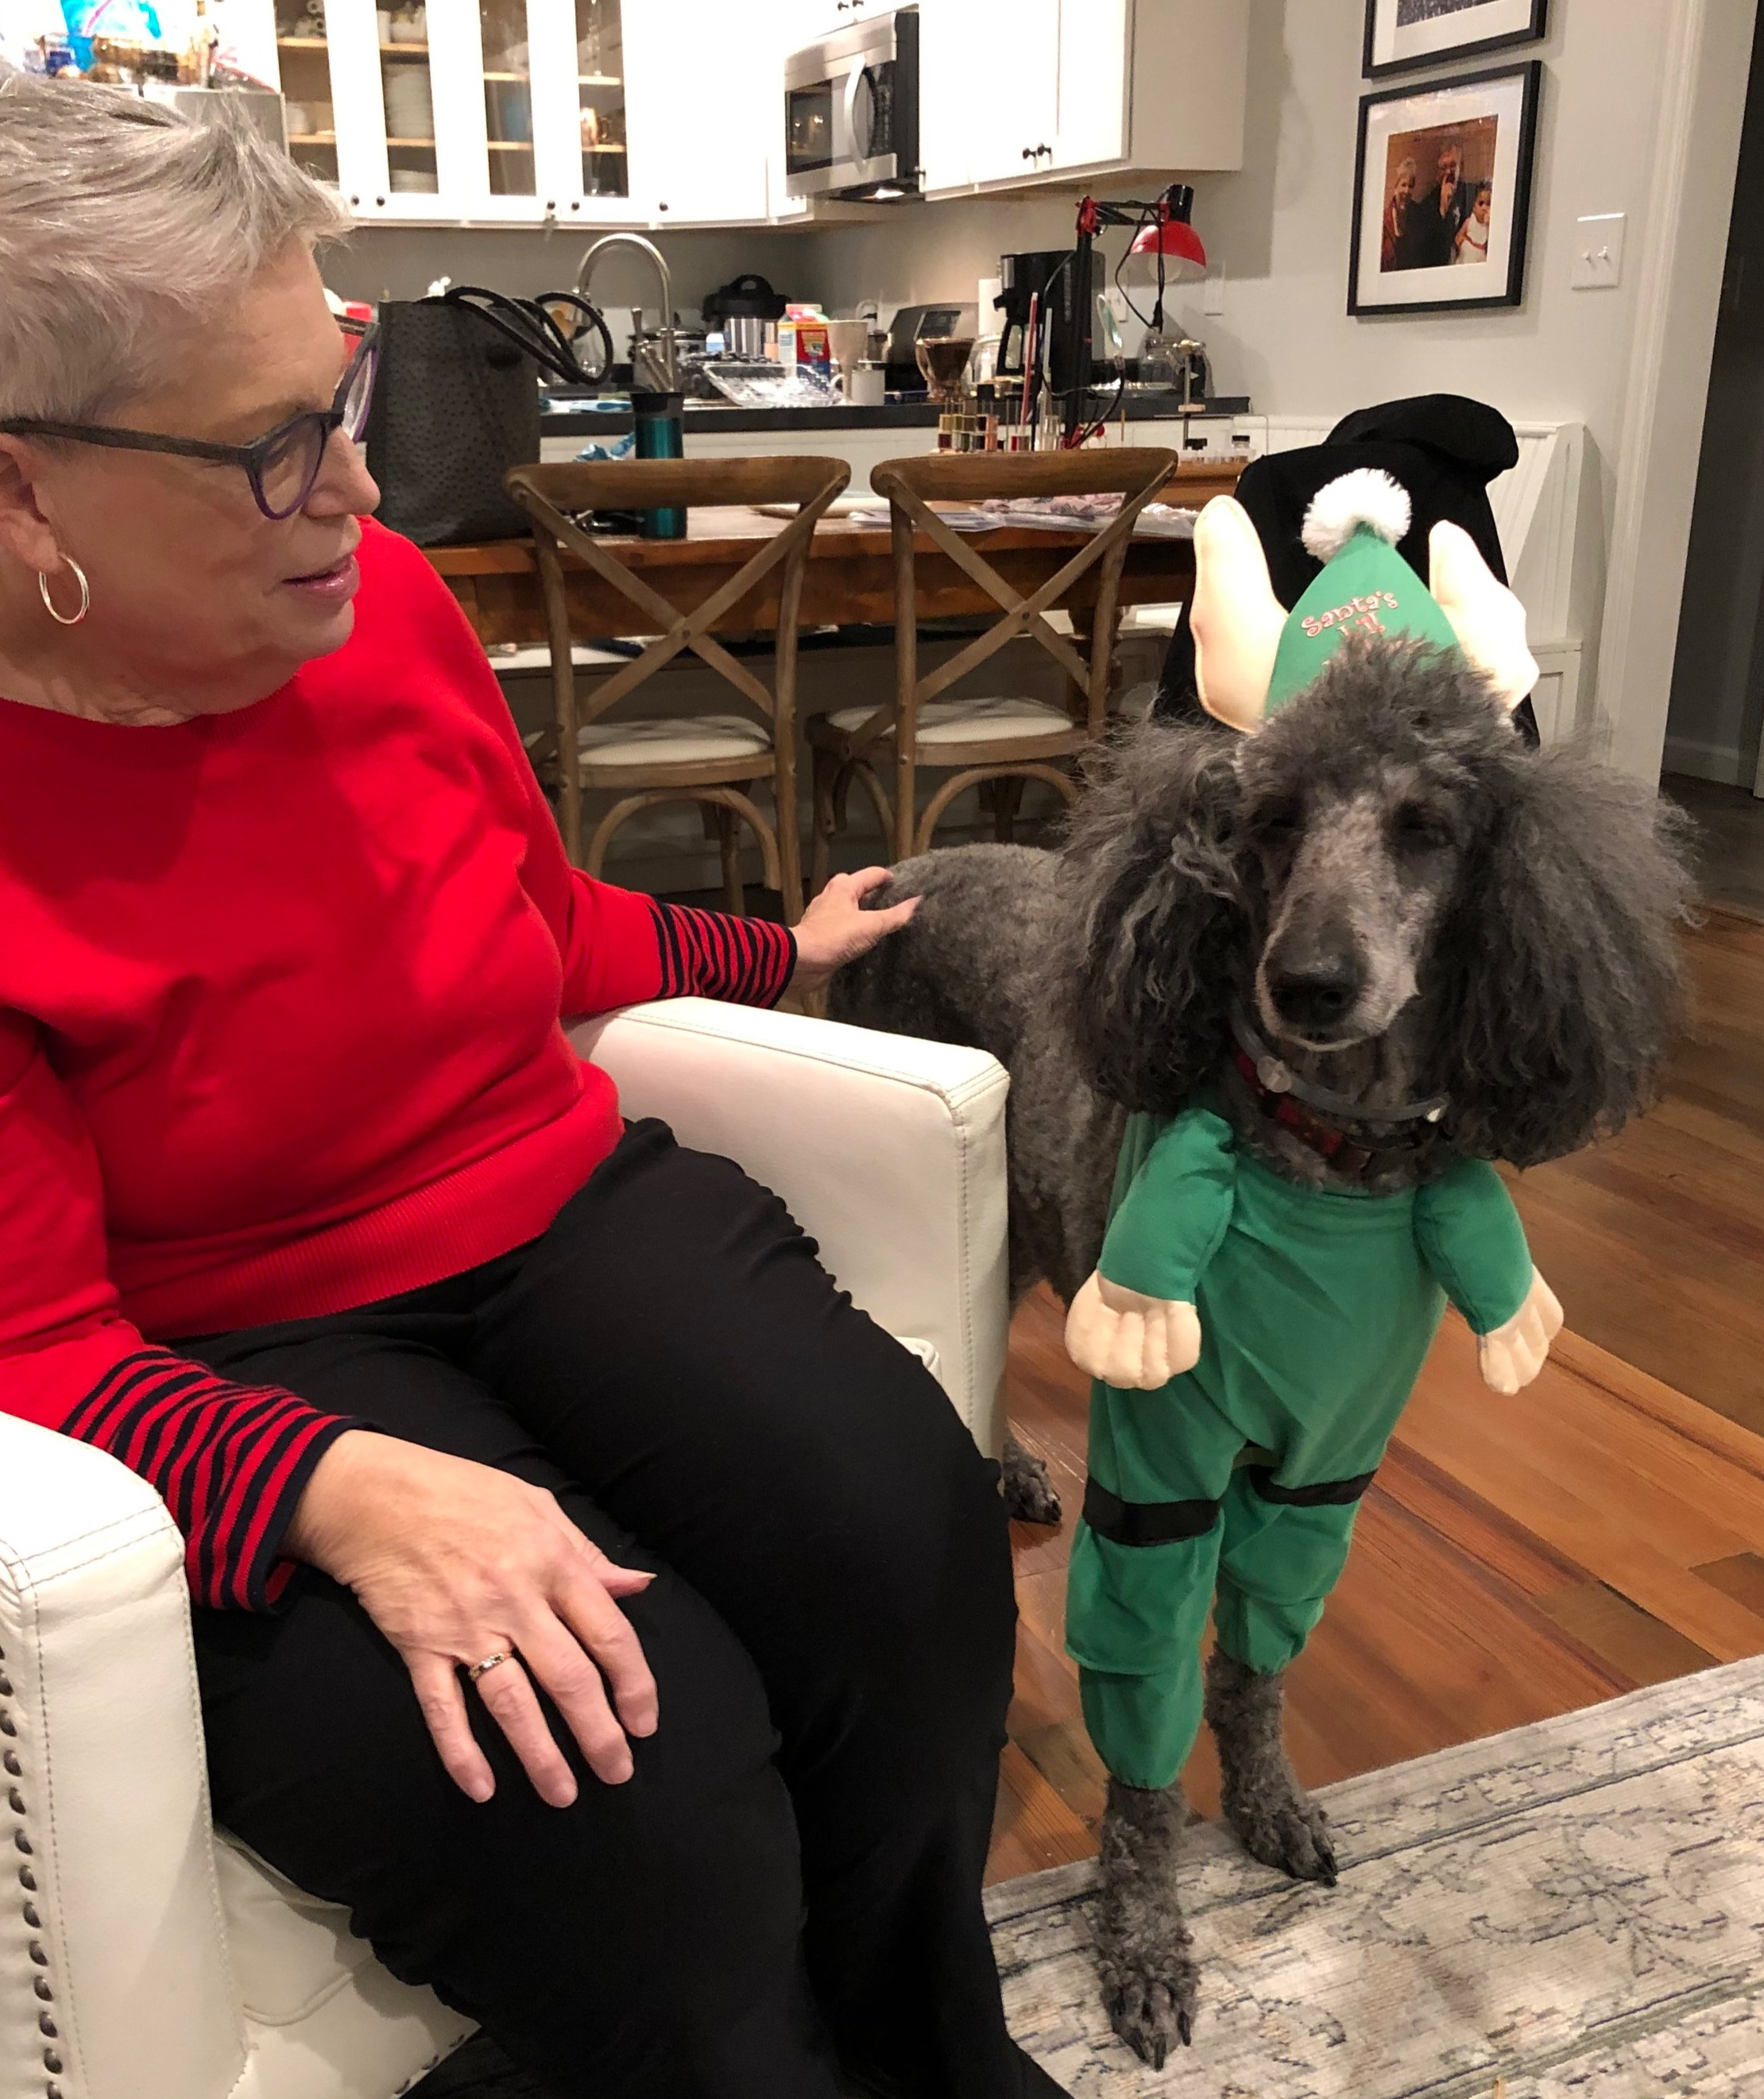 People should never do this to a dog. (Confession: I bought the elf outfit)